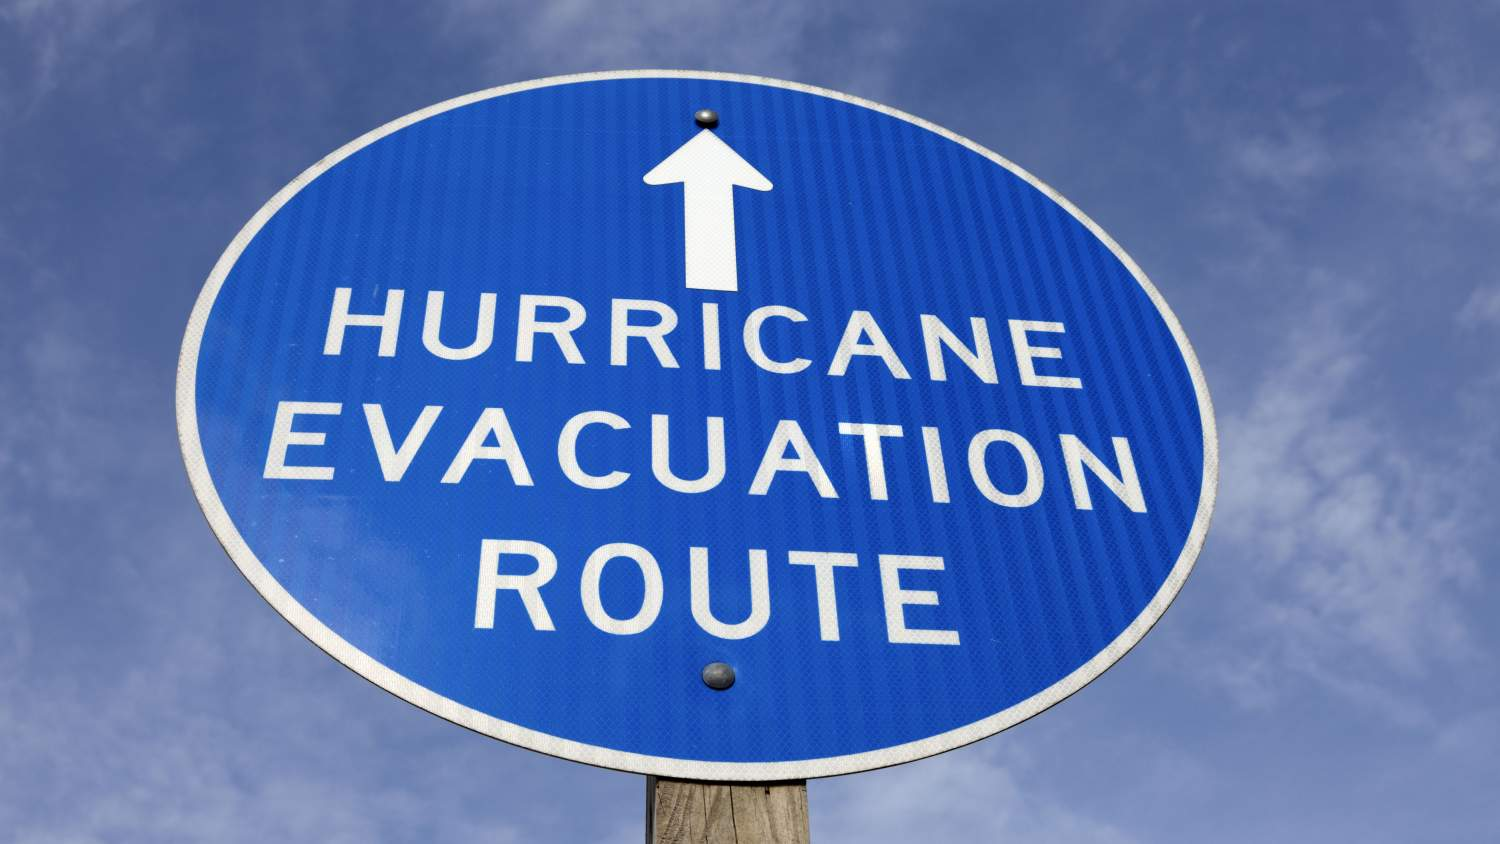 Sign: Hurricane Evacuation Route